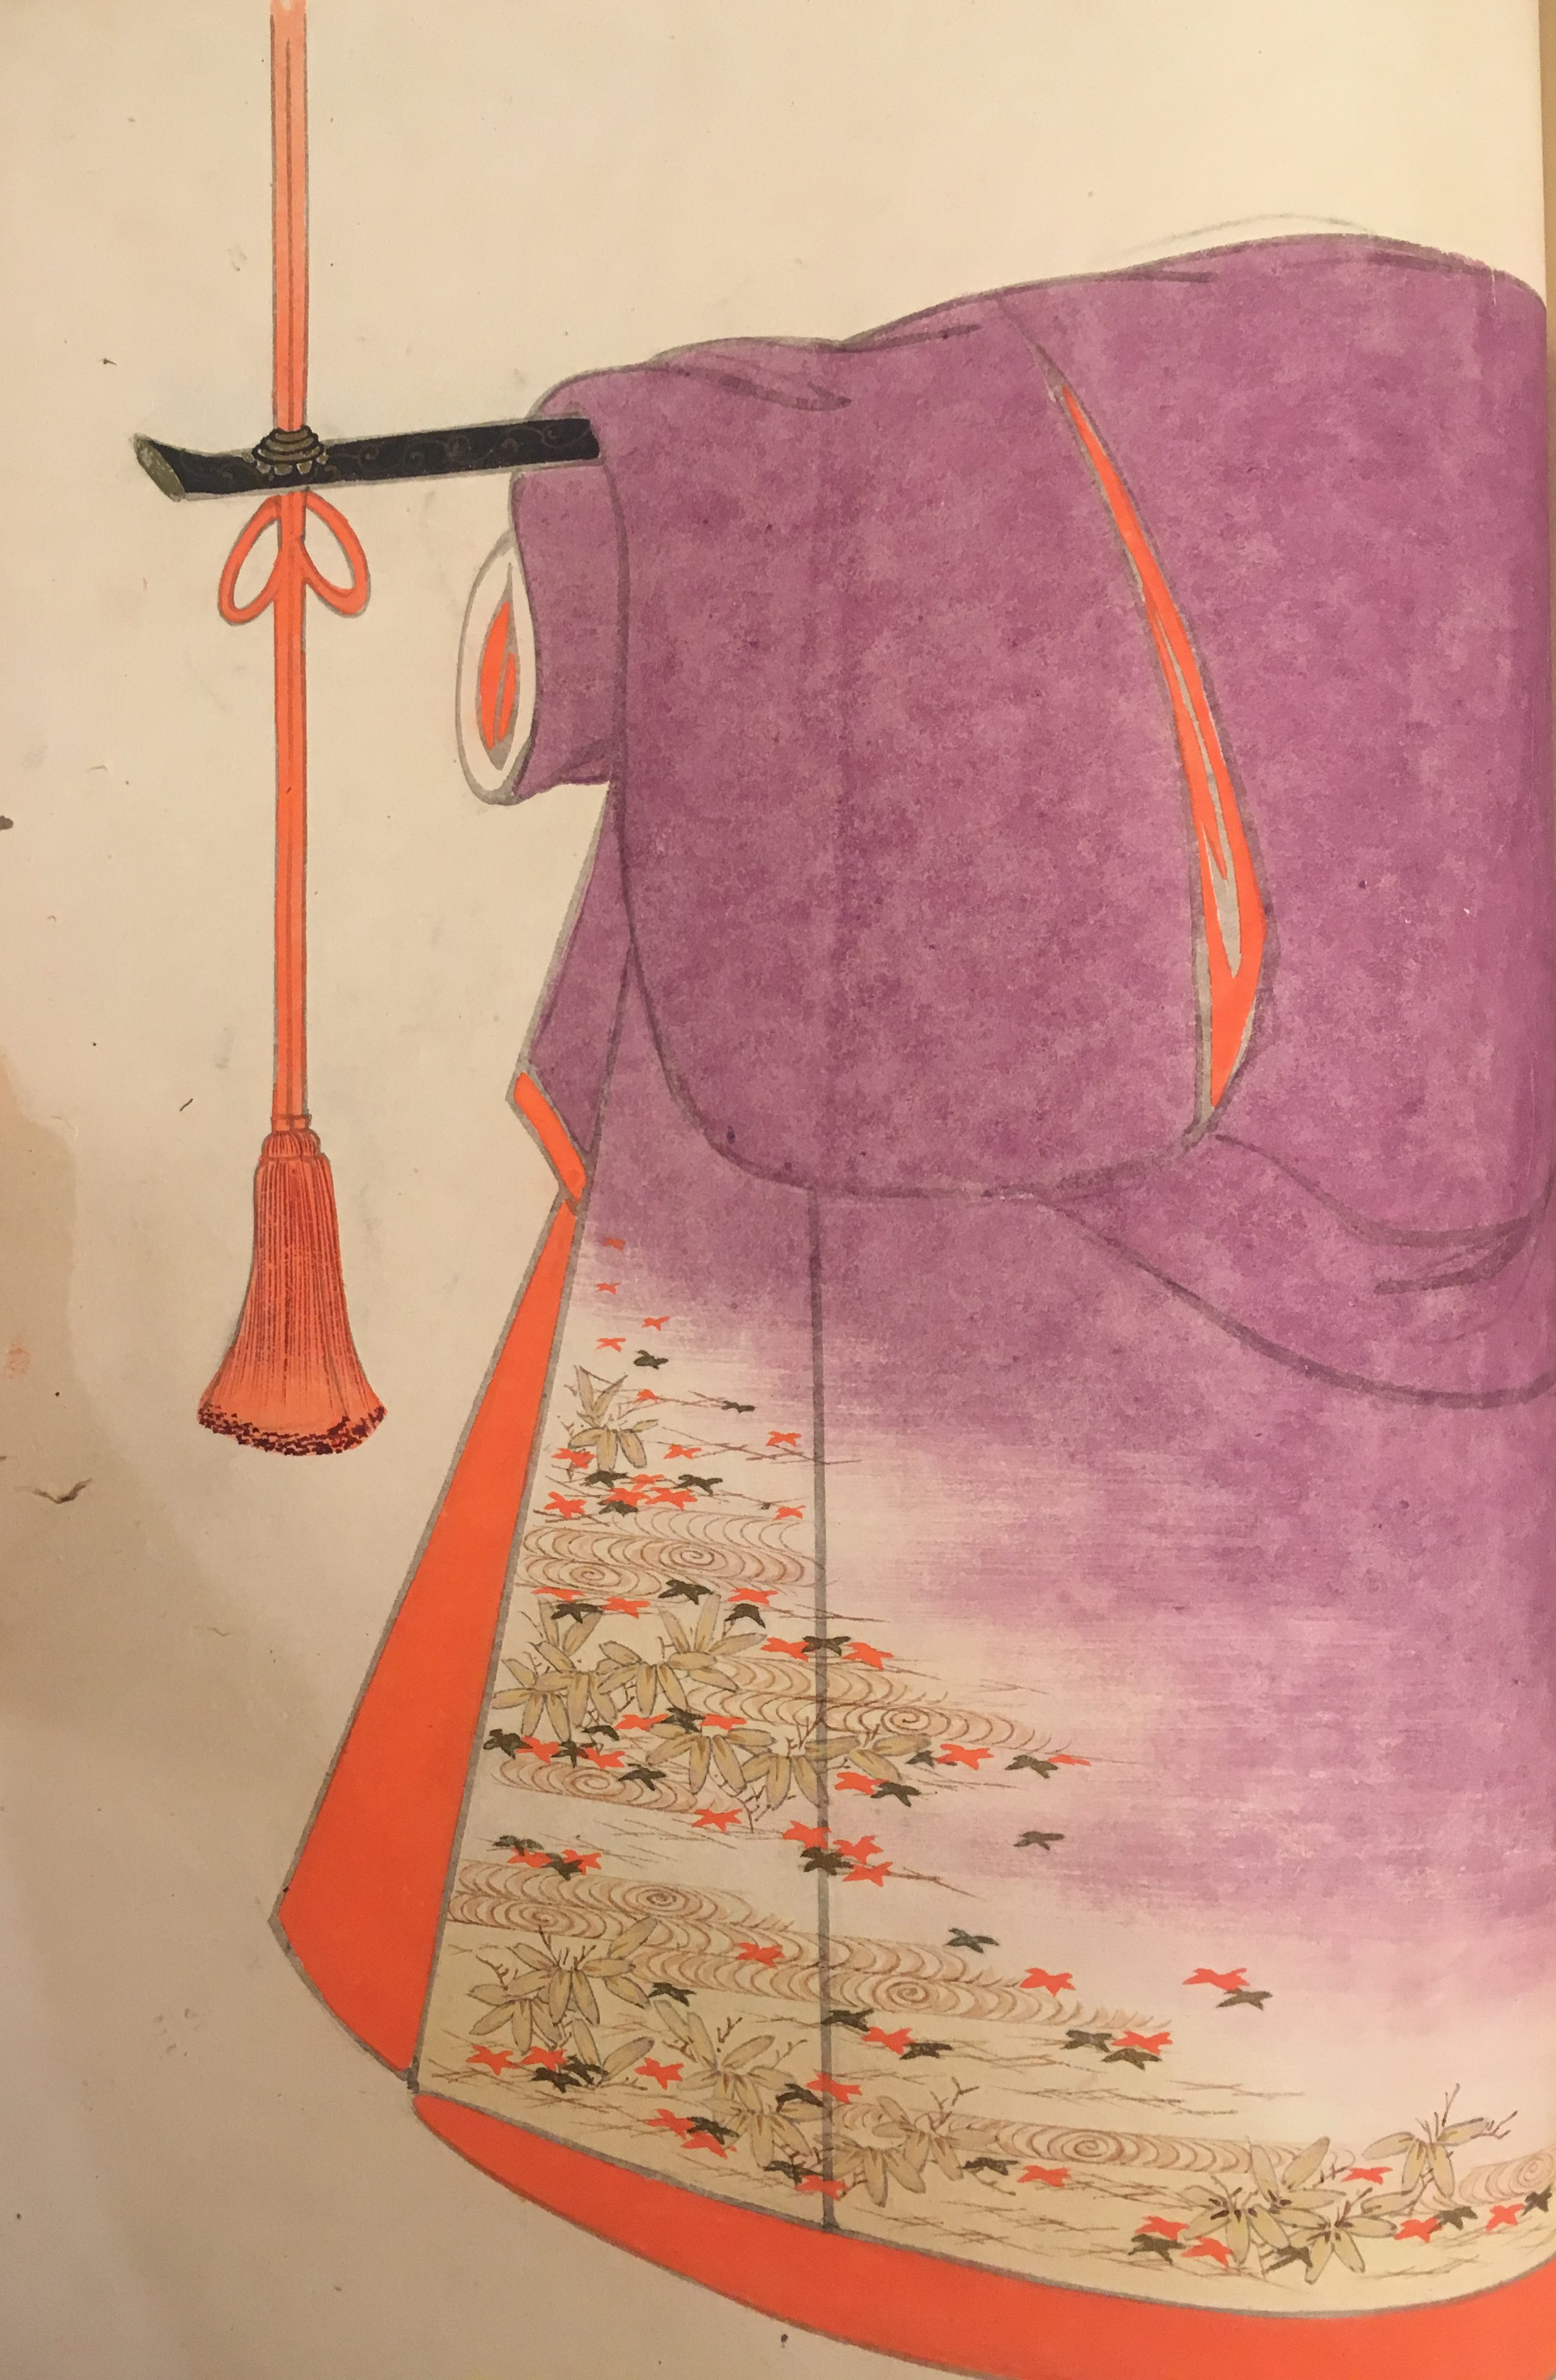 A purple kimono with red-orange interior. The interior color matches some of the maple leaves depicted in the pattern in the lower corner.